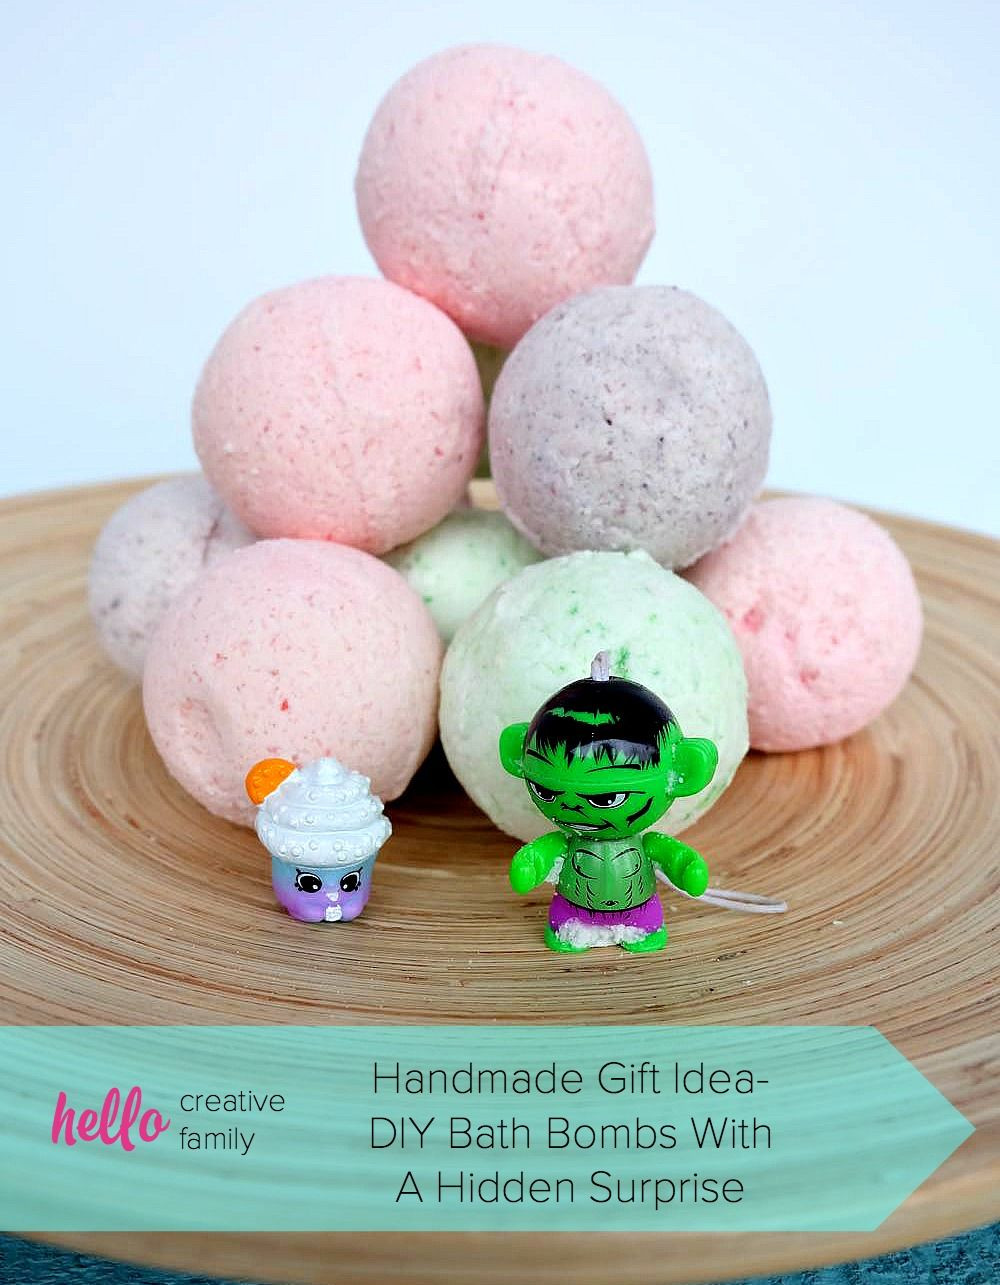 DIY Bath Bombs For Kids  How To Make DIY Bath Bombs With A Toy Hidden Inside